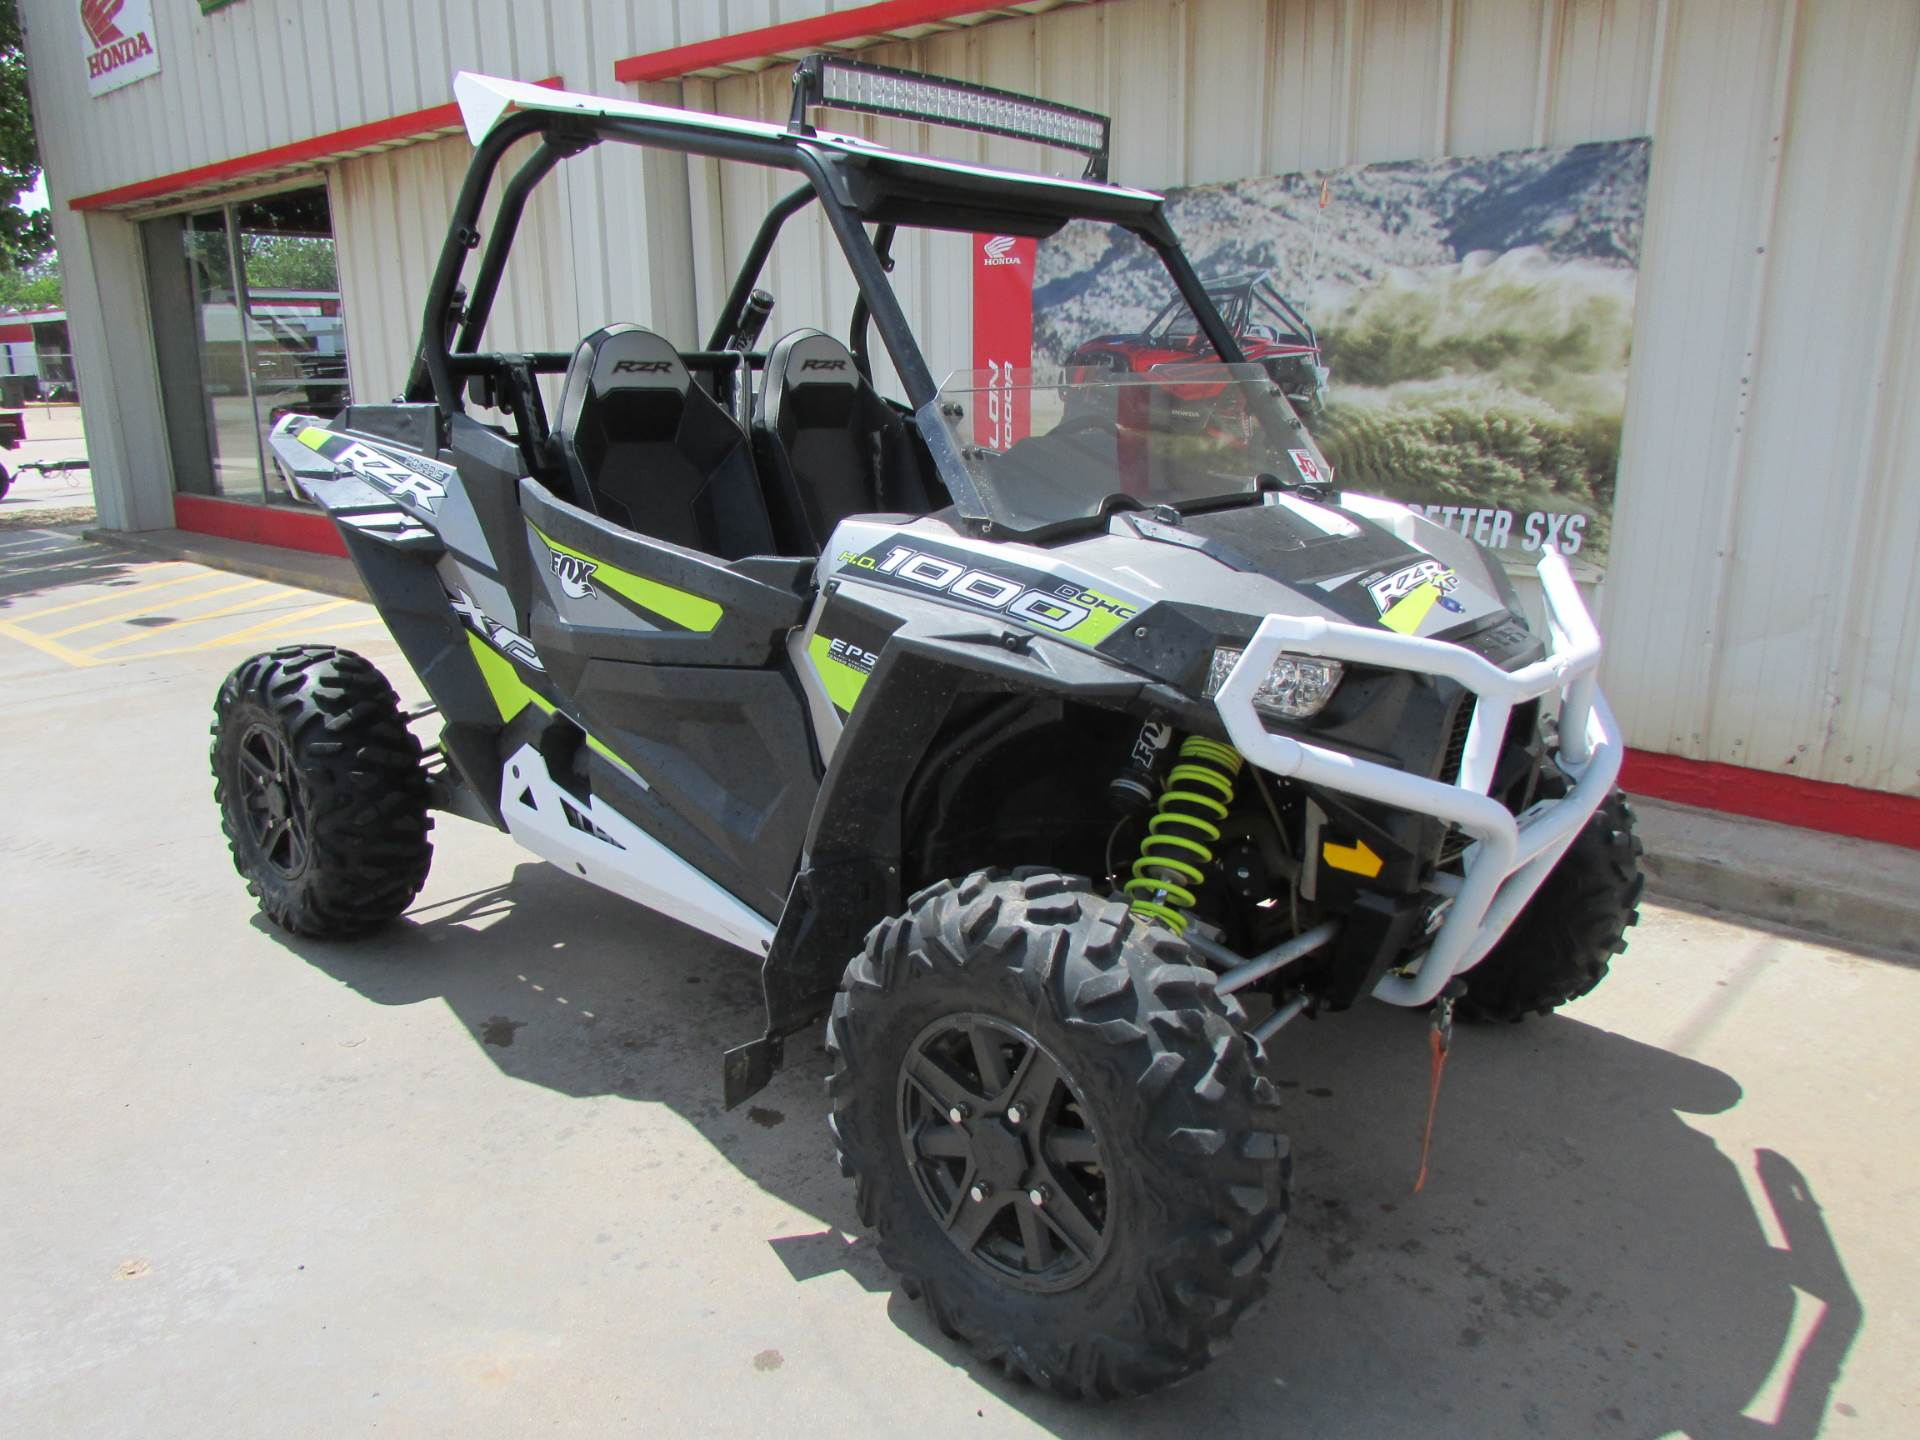 2015 Polaris RZR® XP 1000 EPS in Wichita Falls, Texas - Photo 11